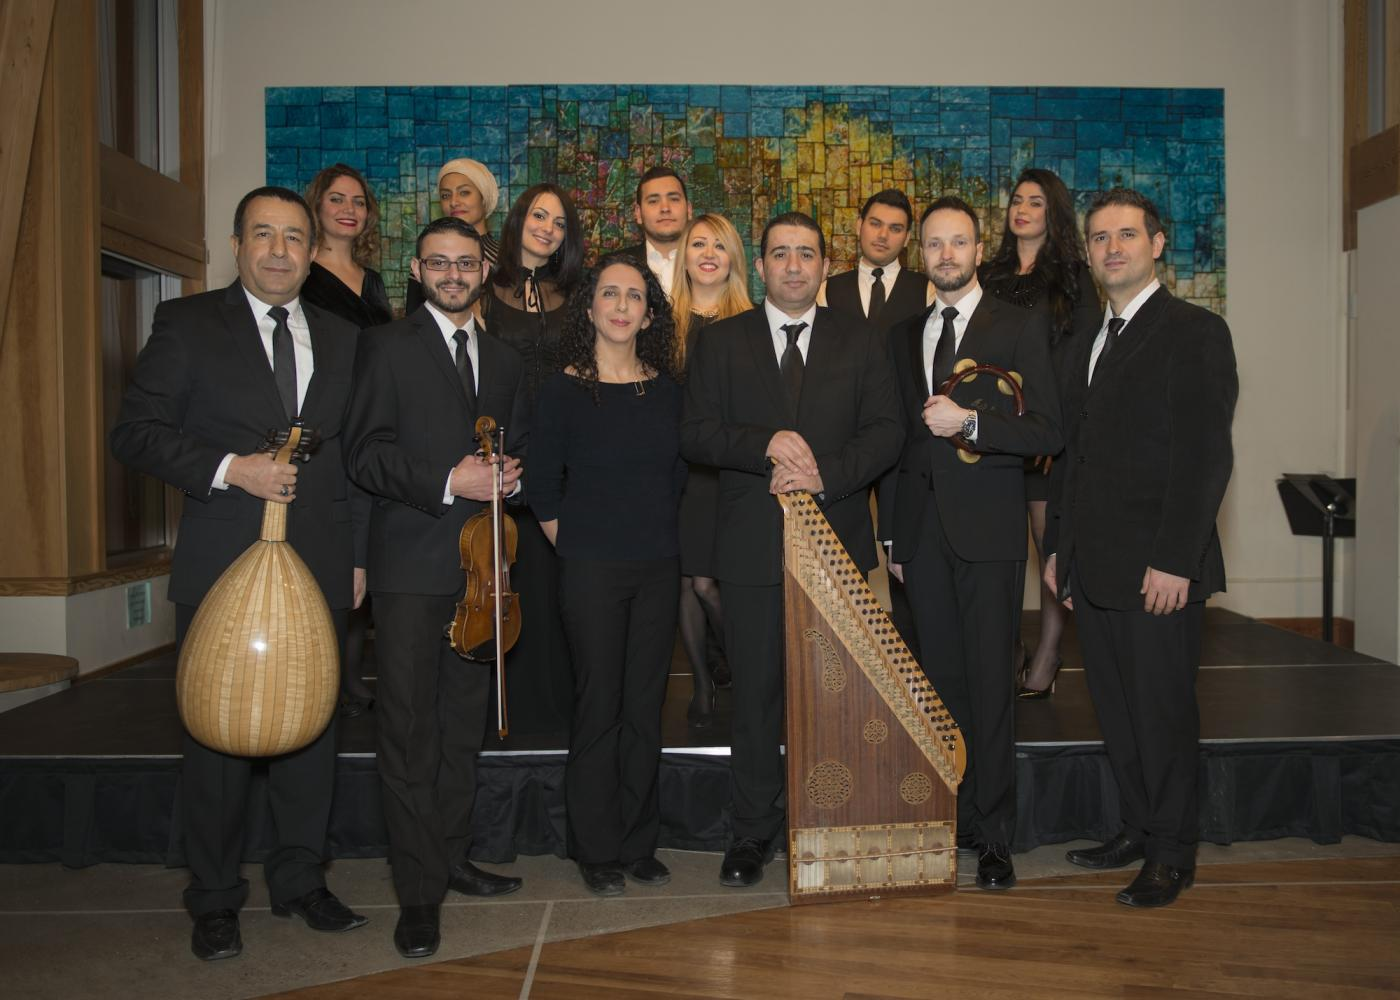 Roots revival: Classical Arabic music makes comeback in